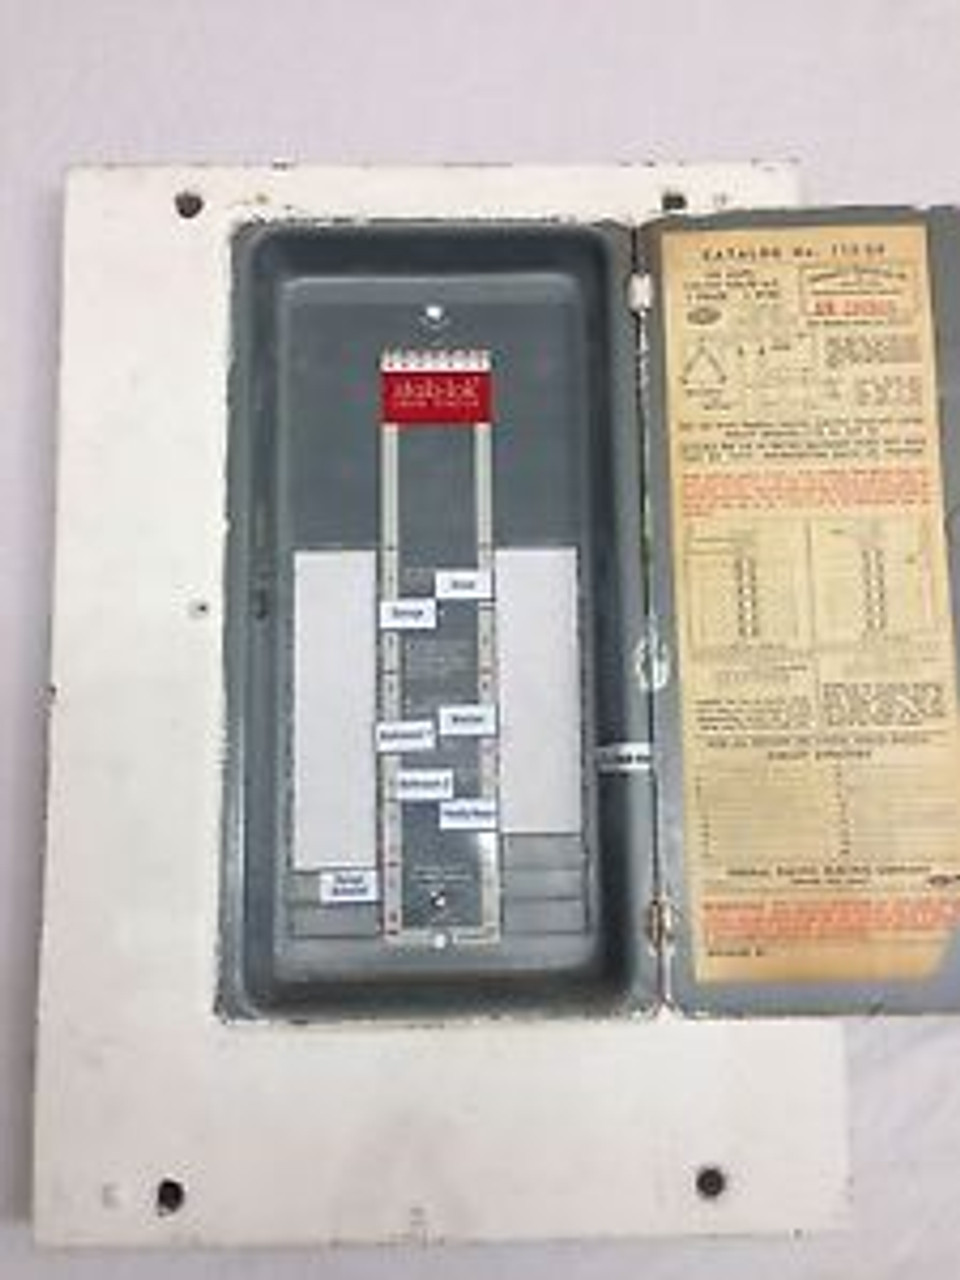 [SCHEMATICS_48IS]  Federal Pacific 112-20 Fpe 100 Amp Electric Panel Cover Fuse Box Stab-Lok -  SPW Industrial | Federal Fuse Box |  | SPW Industrial